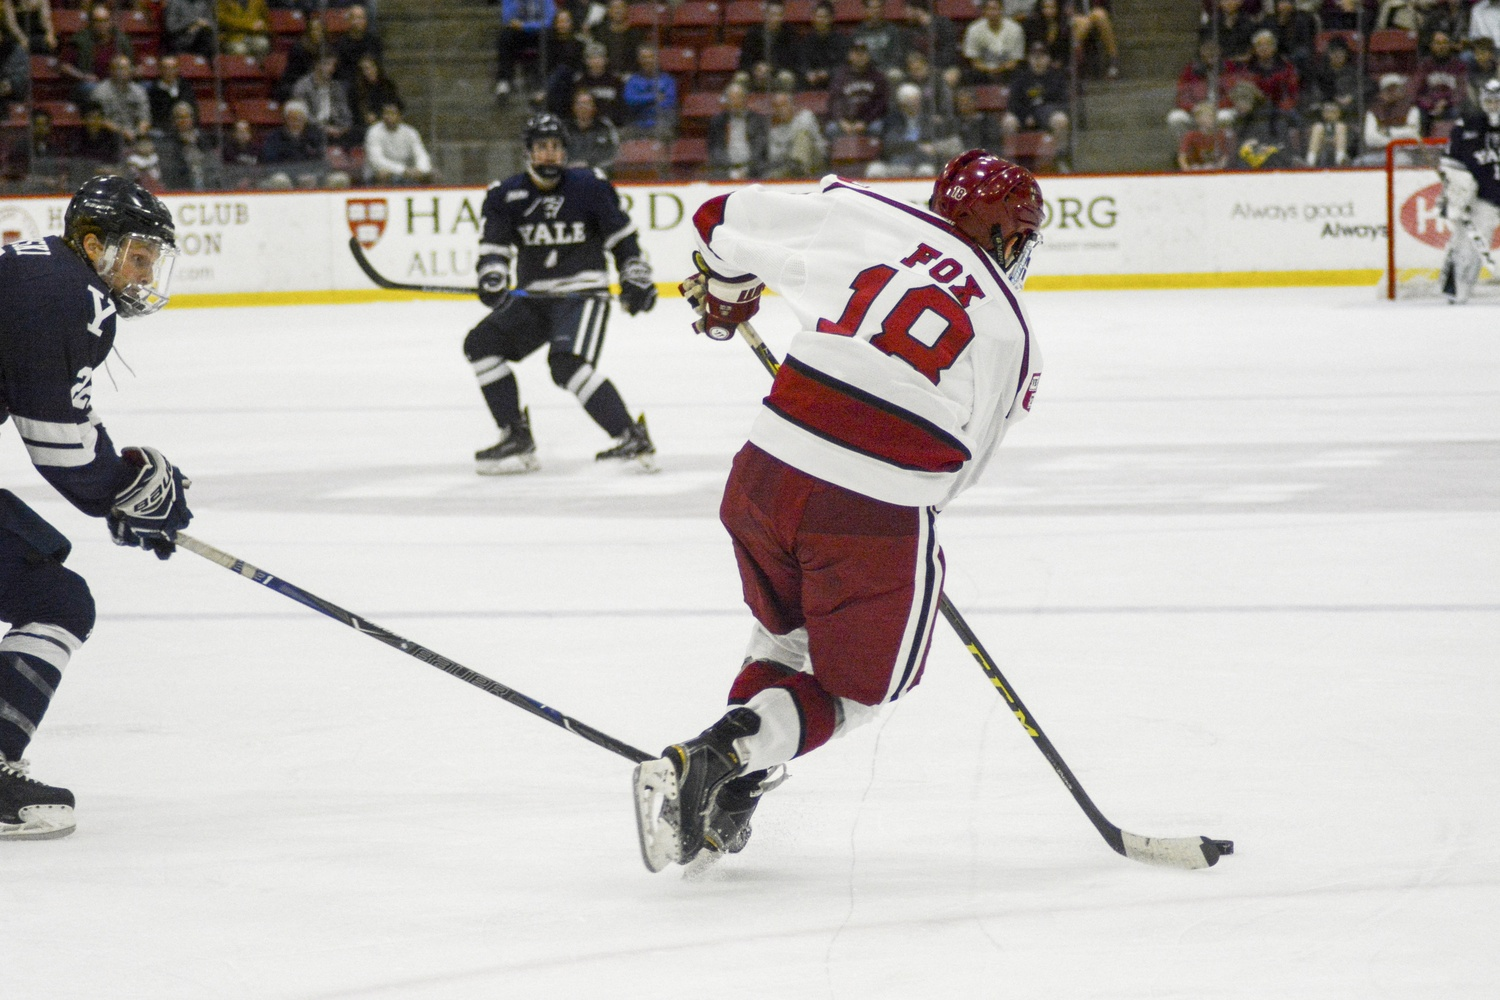 Despite rallying in the second period and scoring twice to tie the game, Harvard could not hold off Yale's pressure.